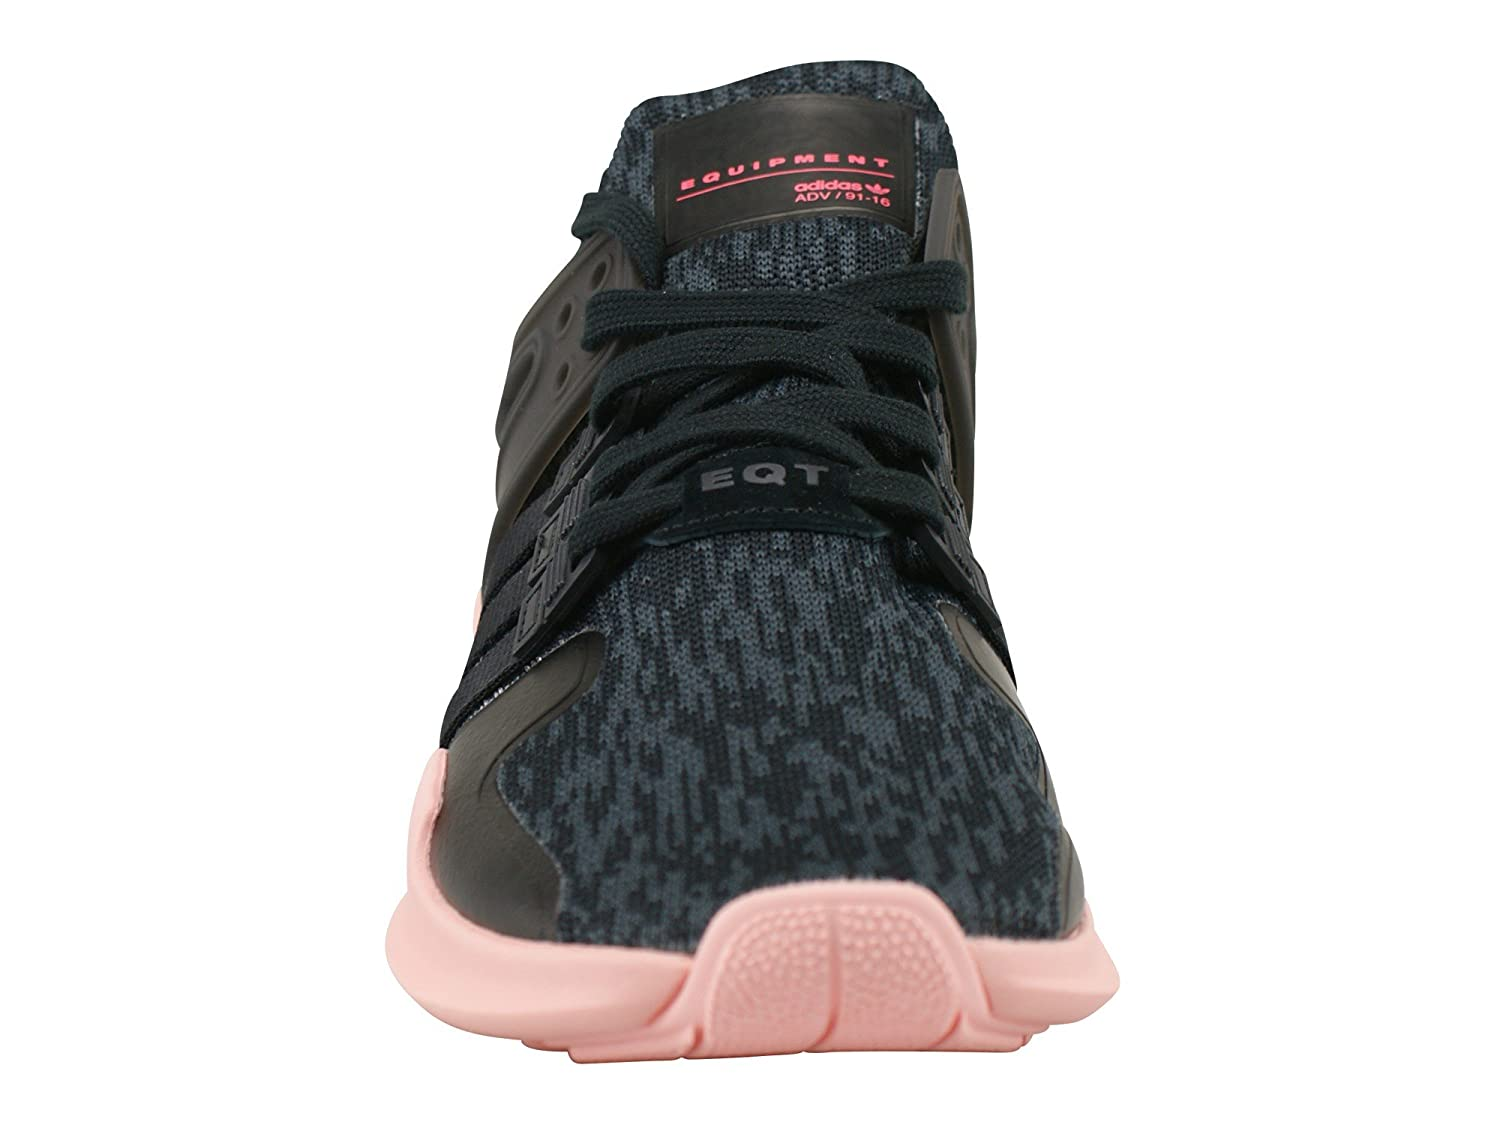 buy popular a95c4 d4107 ... low cost adidas equipment equipment support a 14135 zapatillas para mujer  mujer negro d4b4c65 d7a9e d7b03